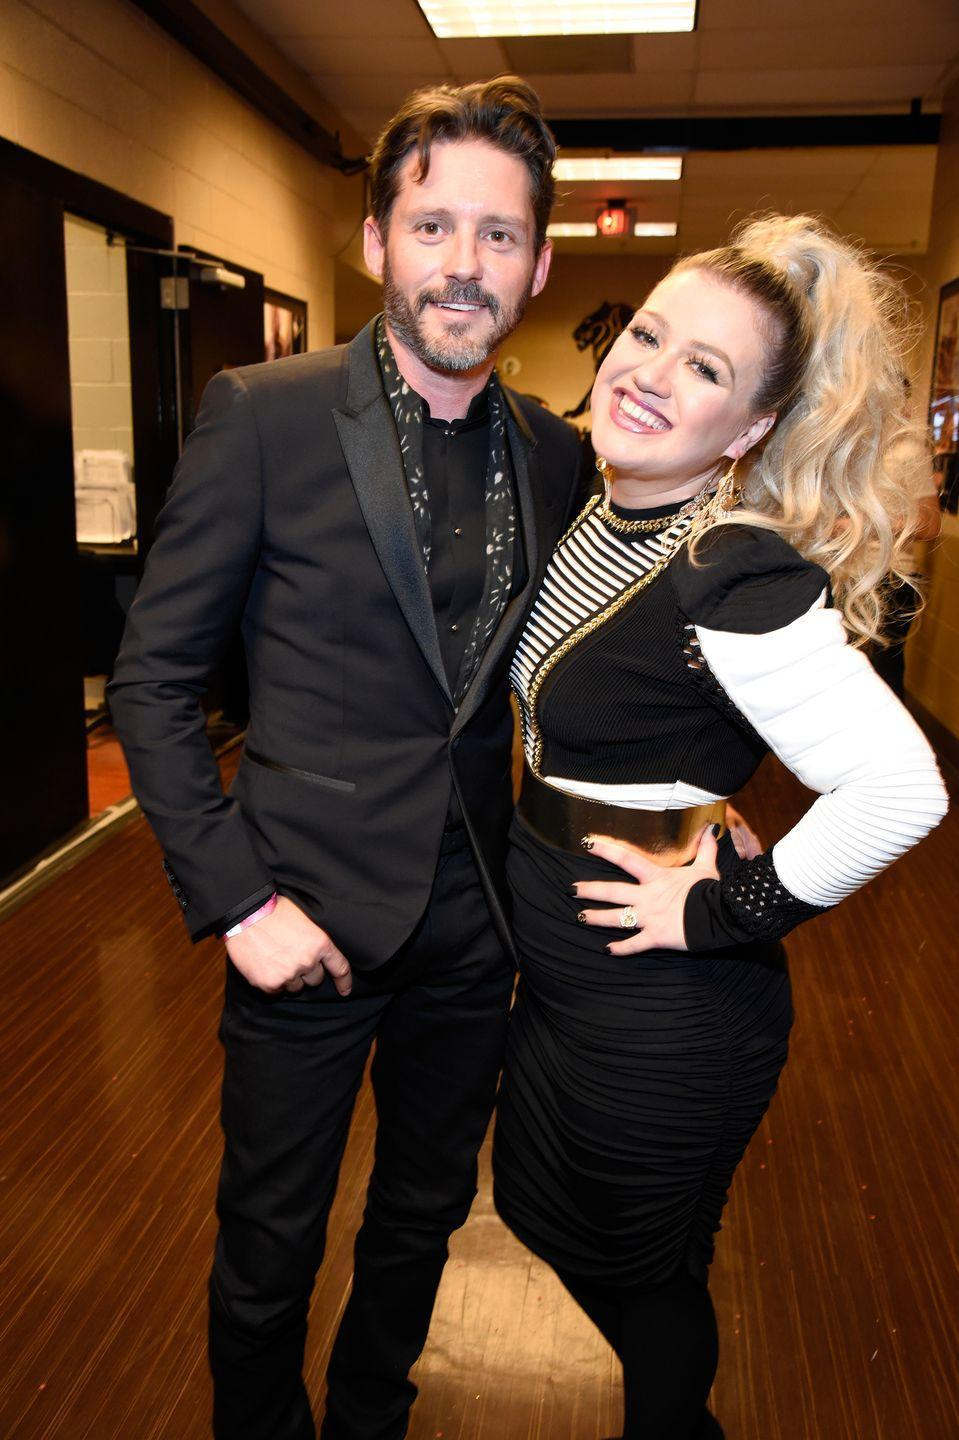 """<p>Truly did not think <a href=""""https://www.cosmopolitan.com/entertainment/celebs/a32868863/kelly-clarkson-brandon-blackstock-relationship-divorce-timeline/"""" rel=""""nofollow noopener"""" target=""""_blank"""" data-ylk=""""slk:Kelly Clarkson and Brandon Blackstock"""" class=""""link rapid-noclick-resp"""">Kelly Clarkson and Brandon Blackstock</a>'s breakup would get so messy, but it went from zero to 100 REAL QUICK. <a href=""""https://www.cosmopolitan.com/entertainment/celebs/a32841772/kelly-clarkson-brandon-blackstock-divorce/"""" rel=""""nofollow noopener"""" target=""""_blank"""" data-ylk=""""slk:Kelly filed to divorce Brandon in June"""" class=""""link rapid-noclick-resp"""">Kelly filed to divorce Brandon in June</a> after seven years of marriage, and things got v complicated recently in court. <a href=""""https://www.complex.com/pop-culture/2020/12/kelly-clarkson-ex-husband-asking-436000-spousal-child-support#:~:text=Brandon%20Blackstock%20is%20asking%20the,of%20%24436%2C000%20every%20single%20month."""" rel=""""nofollow noopener"""" target=""""_blank"""" data-ylk=""""slk:Brandon asked for $436,000 in spousal and child support money"""" class=""""link rapid-noclick-resp"""">Brandon asked for $436,000 in spousal and child support money</a>, and now <a href=""""https://www.cosmopolitan.com/entertainment/celebs/a34942053/kelly-clarkson-brandon-blackstock-defrauded-millions/"""" rel=""""nofollow noopener"""" target=""""_blank"""" data-ylk=""""slk:Kelly's claiming he defrauded her of out of millions of dollars."""" class=""""link rapid-noclick-resp"""">Kelly's claiming he defrauded her of out of millions of dollars.</a> Yikes.</p>"""